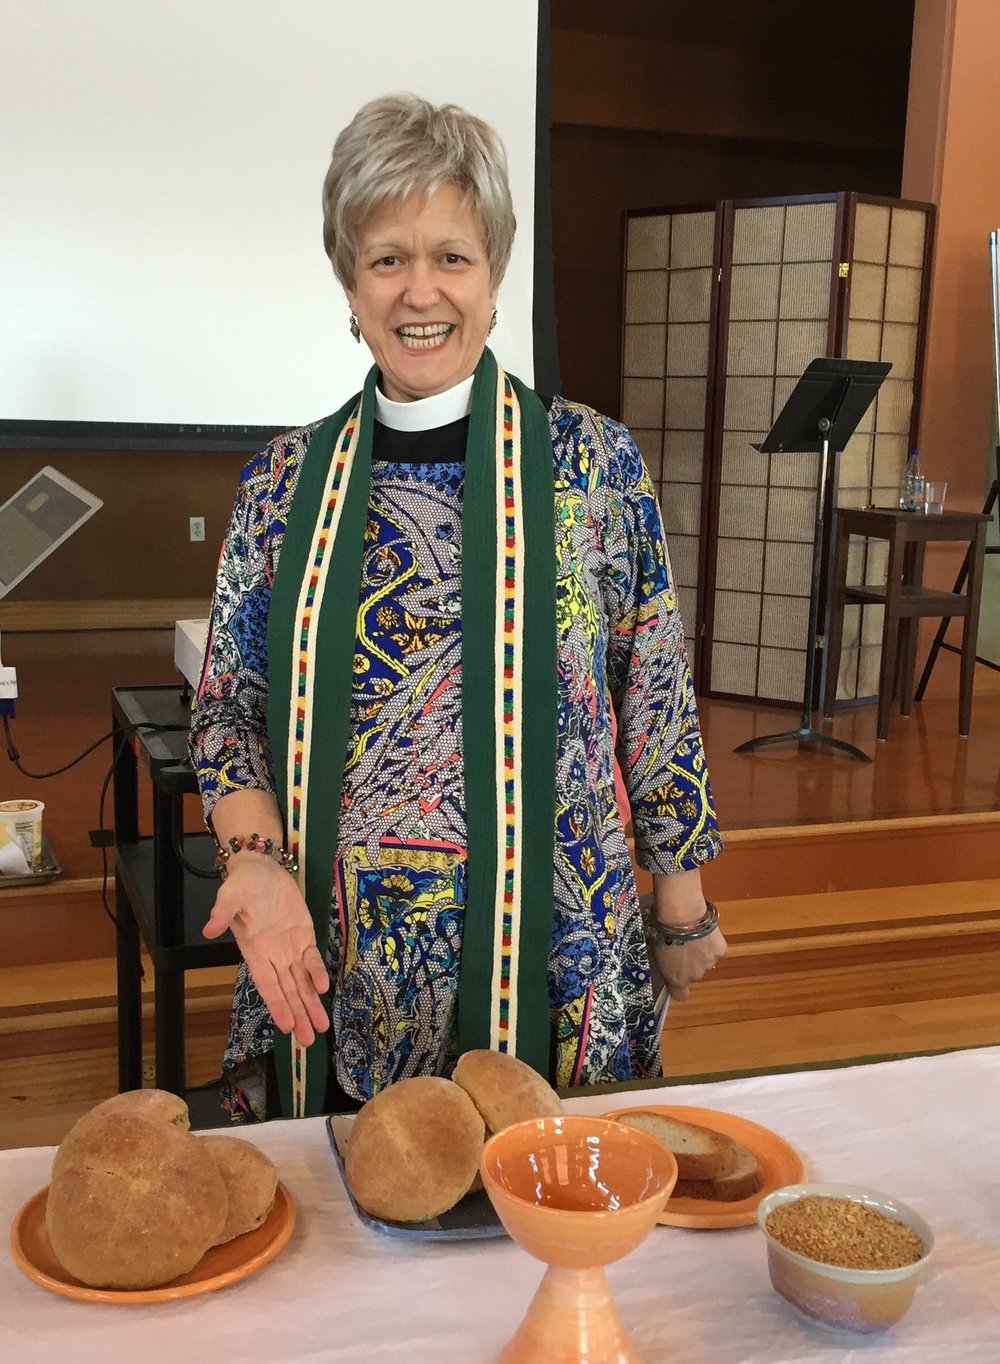 the beloved reverend stefani schatz+ celebrating eucharist at the diocese of california clergy conference, 2016